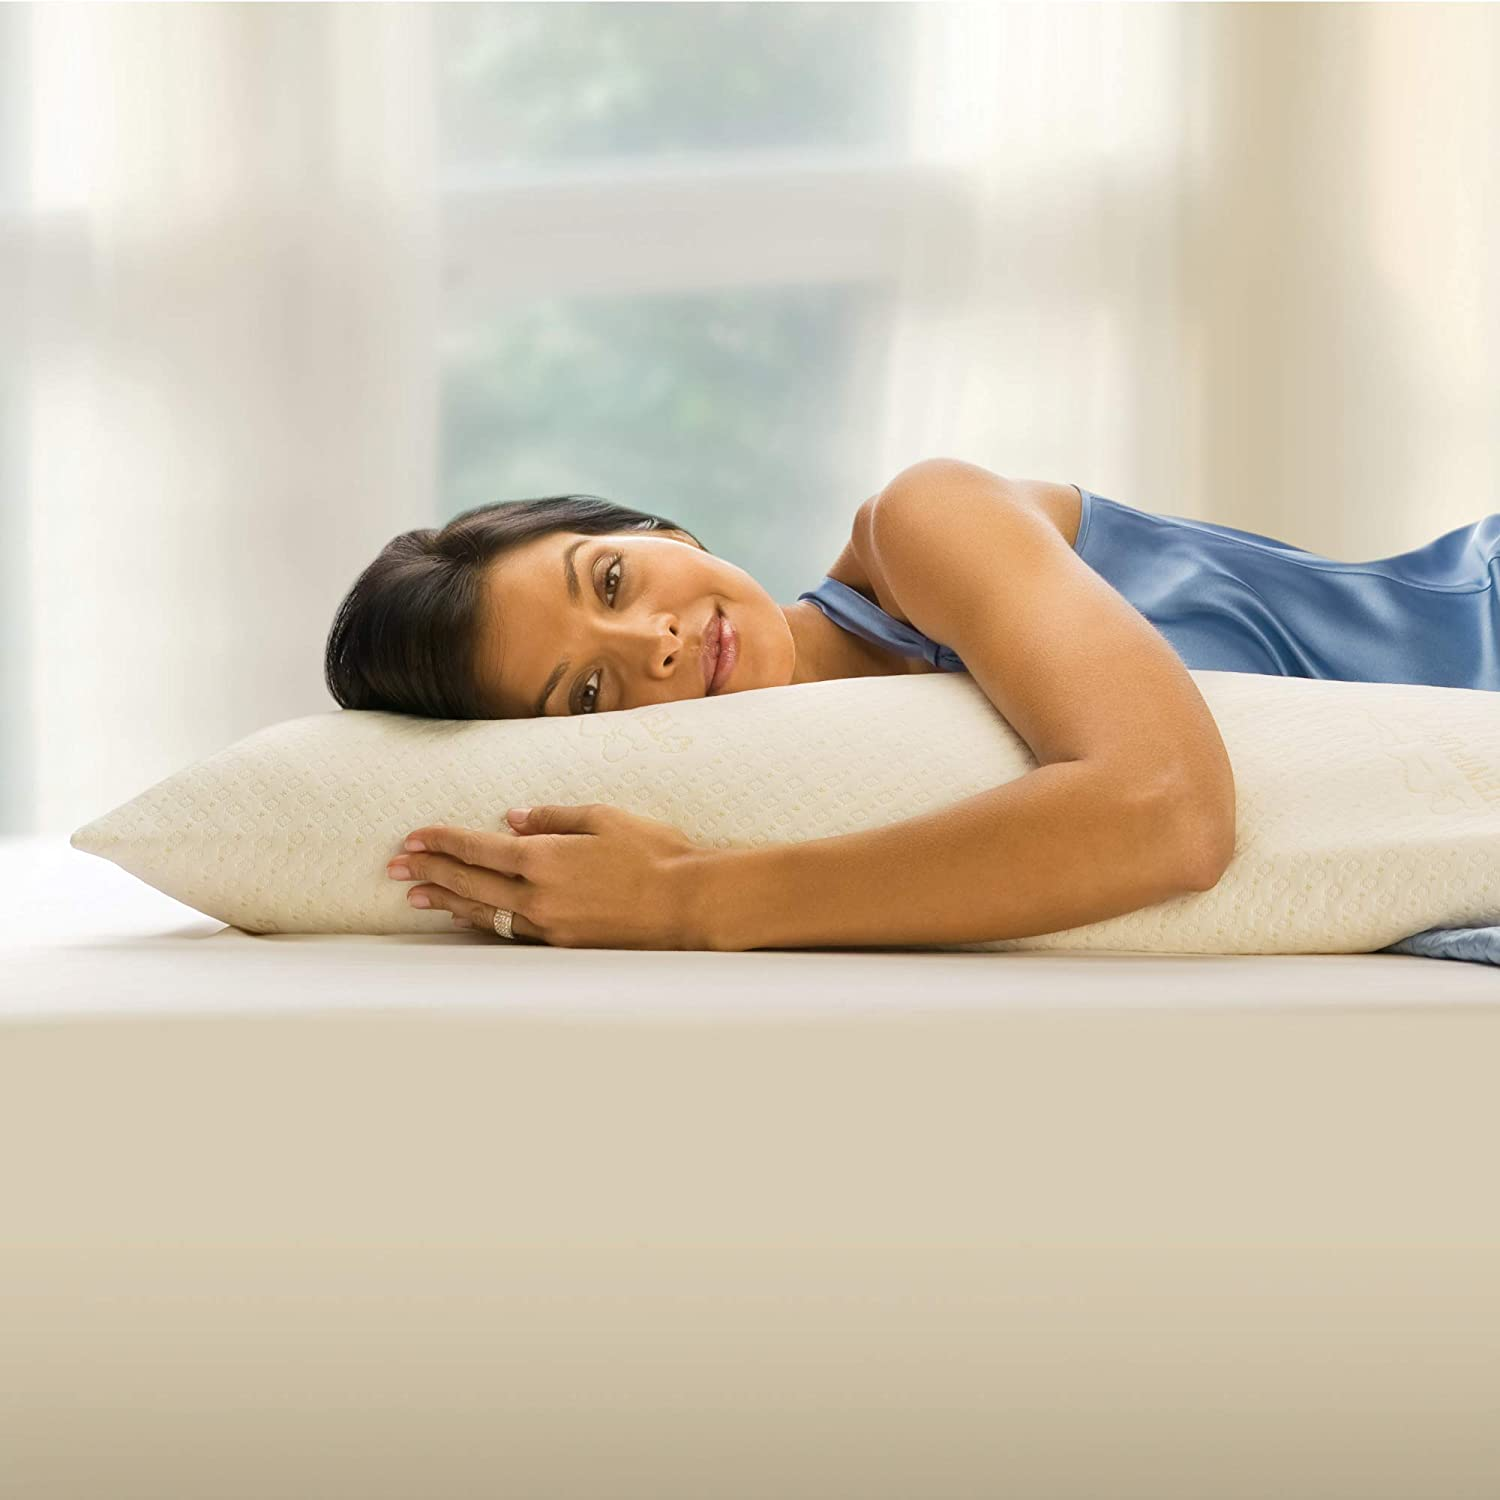 Renewed Pressure Relief Assembled in the USA 5 YR Warranty Soft Support Standard Tempur-Pedic TEMPUR-Body Pillow Adaptable Comfort Washable Cover